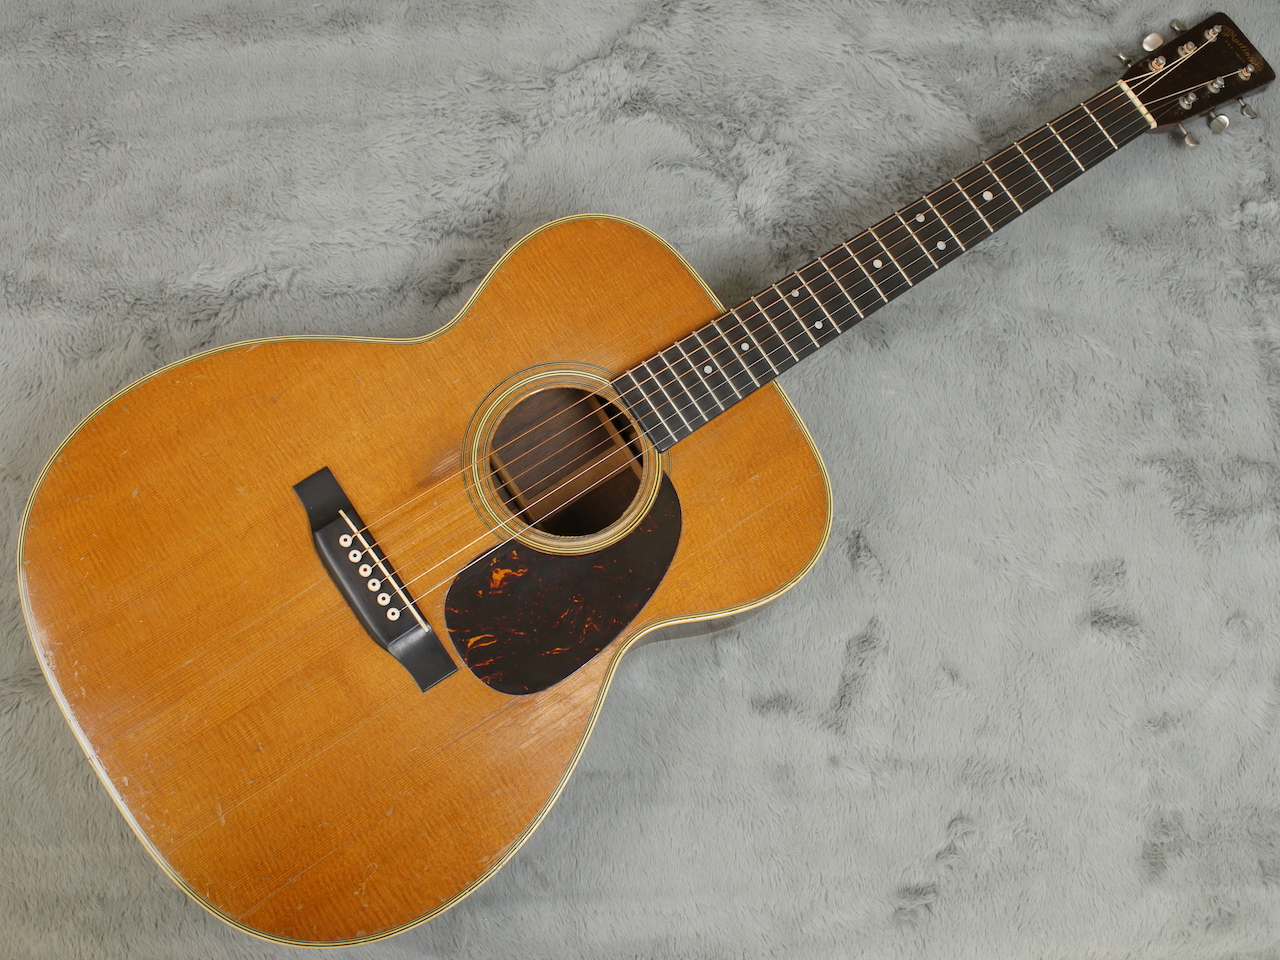 Martin 000 28 1955 Natural Guitar For Sale ATB Guitars